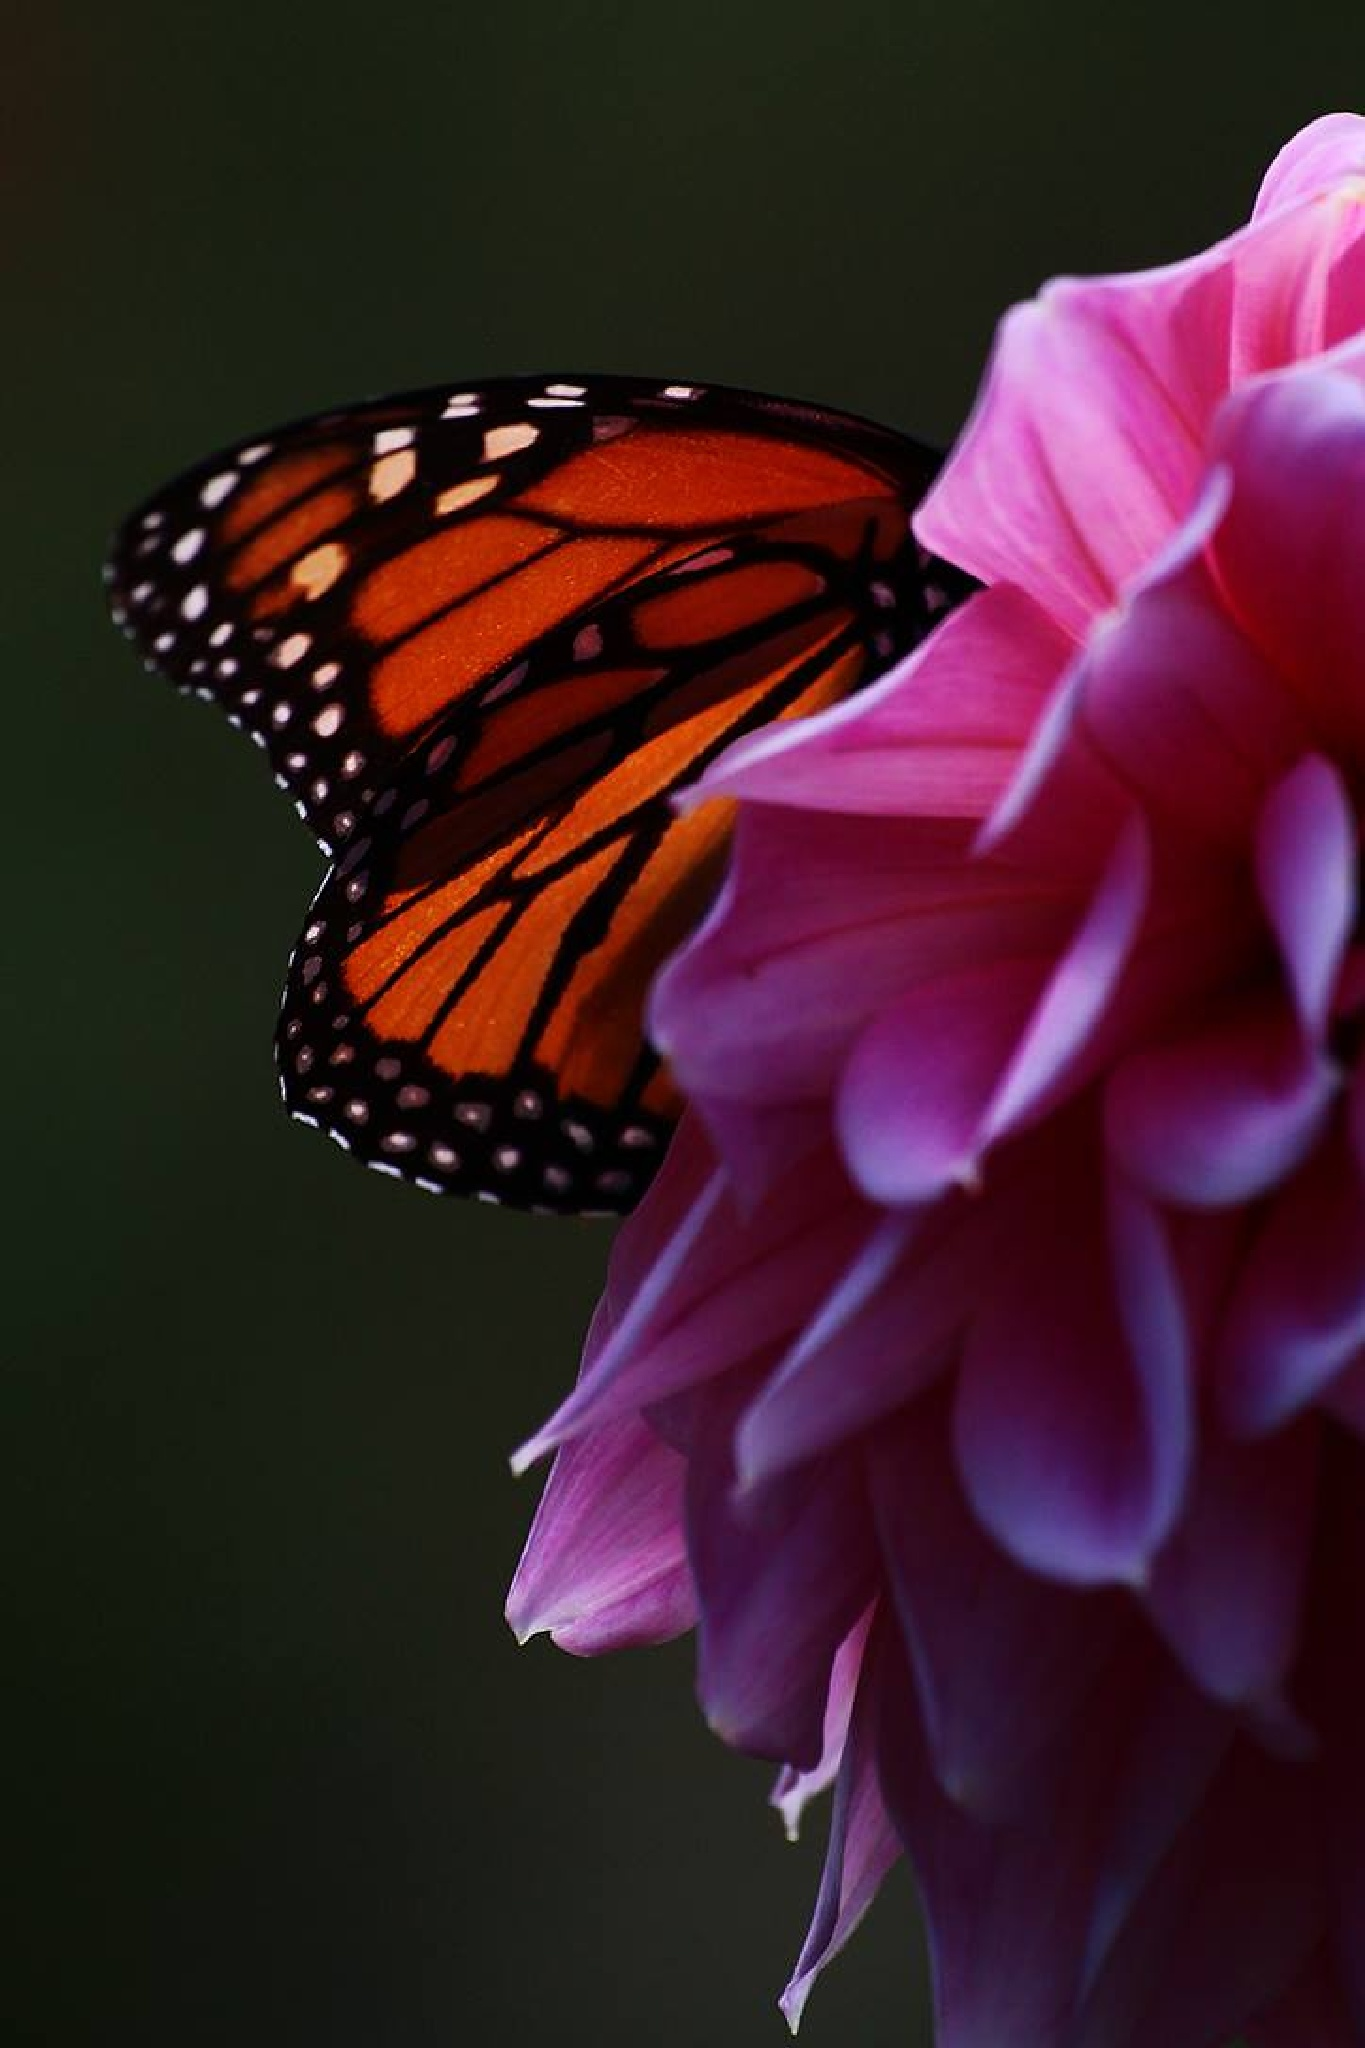 Butterfly and dahlia 3 by Jake Metcalf